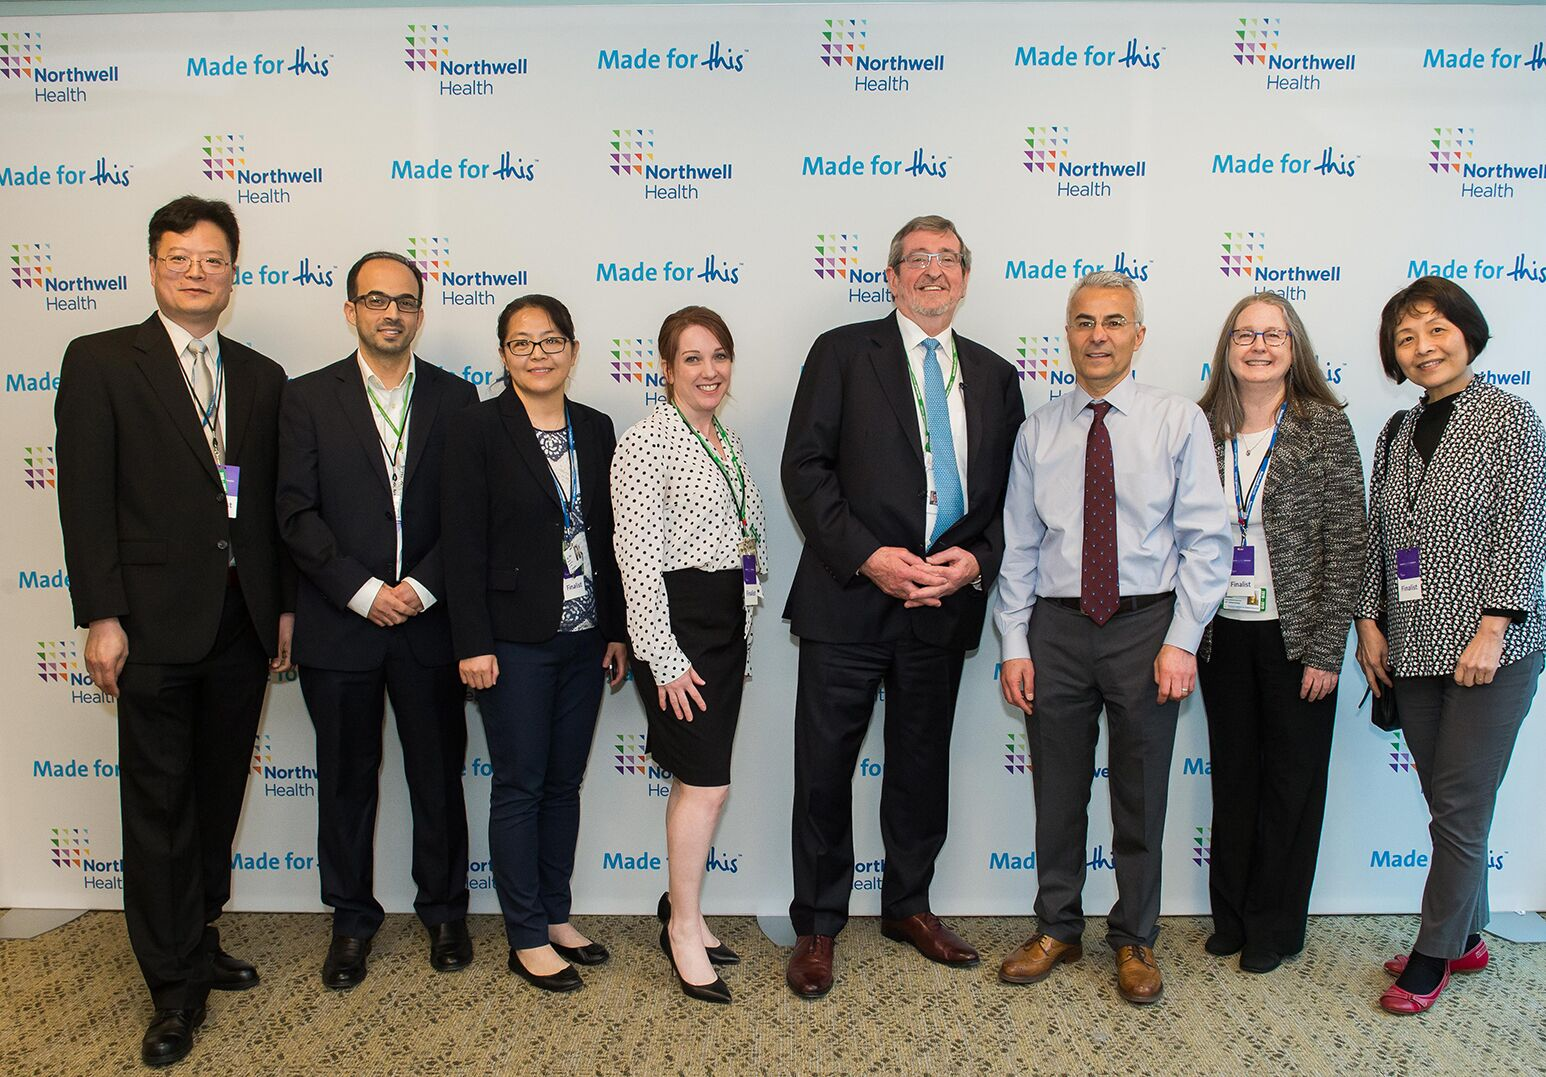 Fifth from left: Northwell Health President and CEO Michael Dowling with Yousef Al-Abed, PhD, vice president of molecular targets and director of The Institute of Bioelectronic Medicine, who is leading the research into peptides.